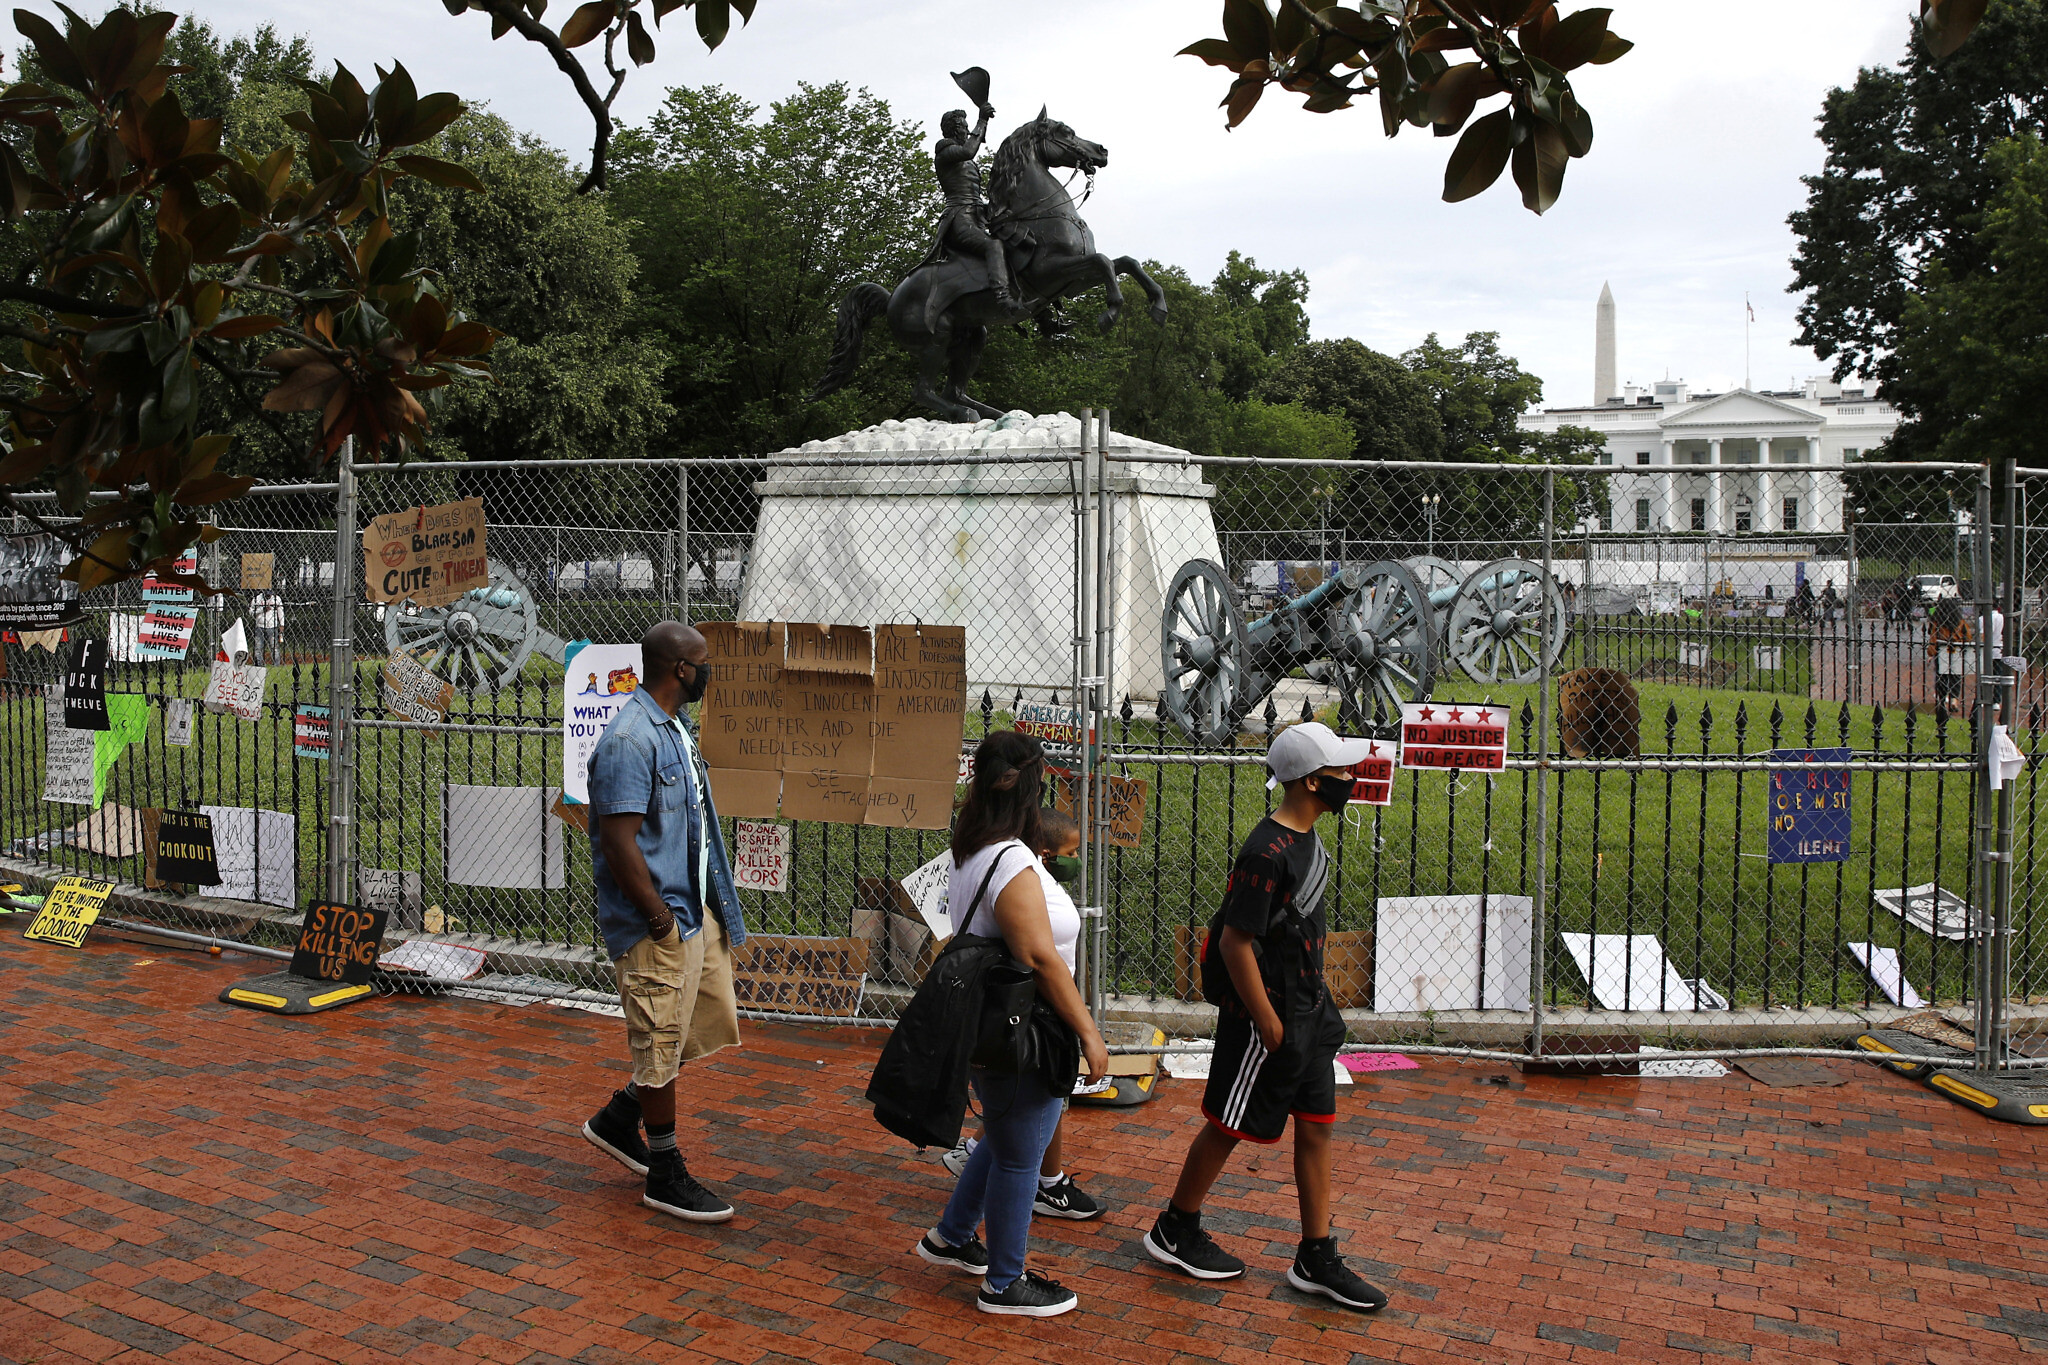 Protesters try to pull down Andrew Jackson statue in DC